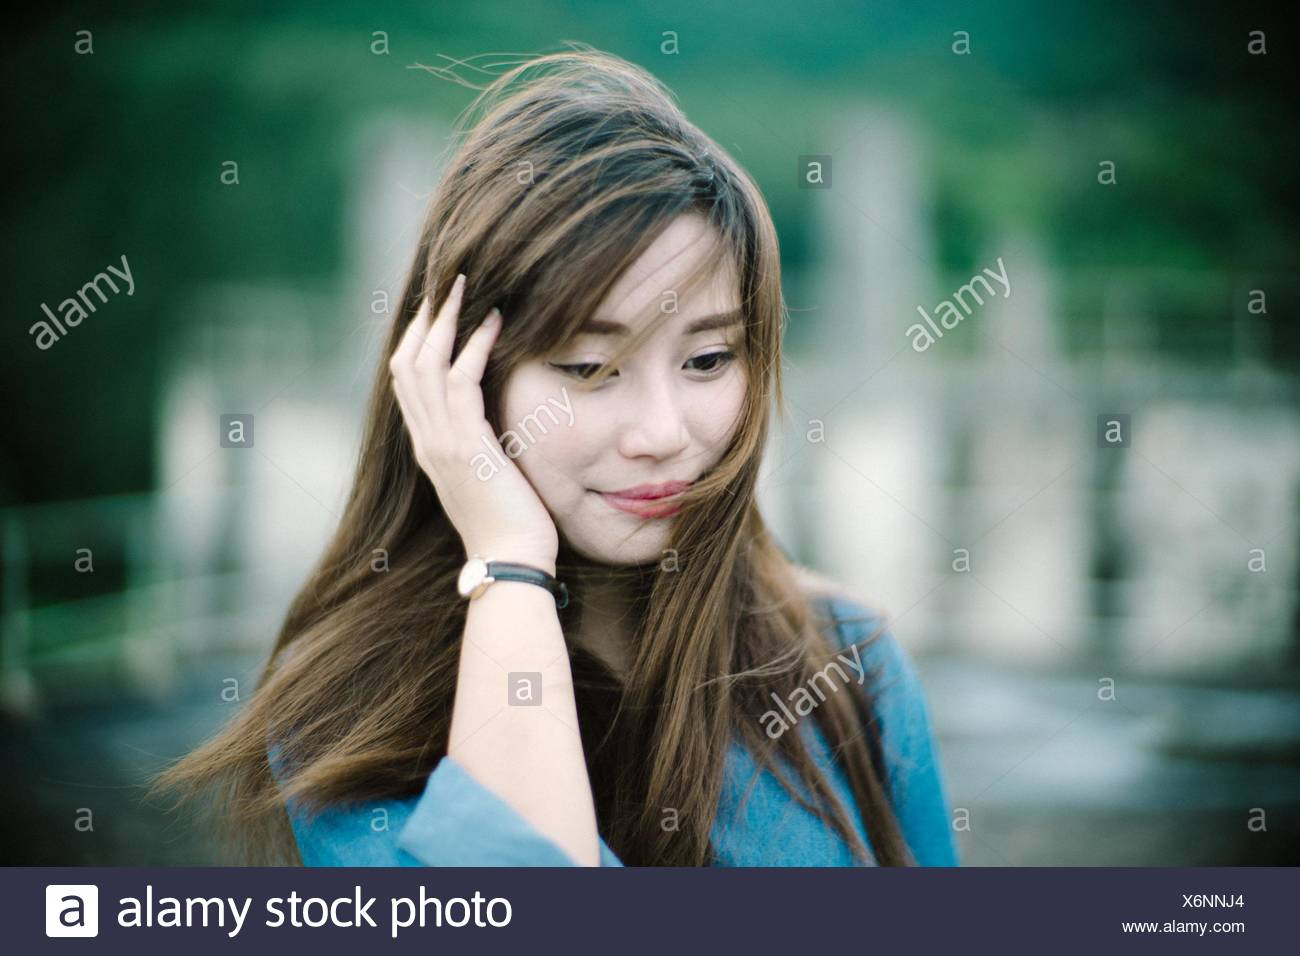 Close-Up Of Young Woman Smiling While Looking Down - Stock Image